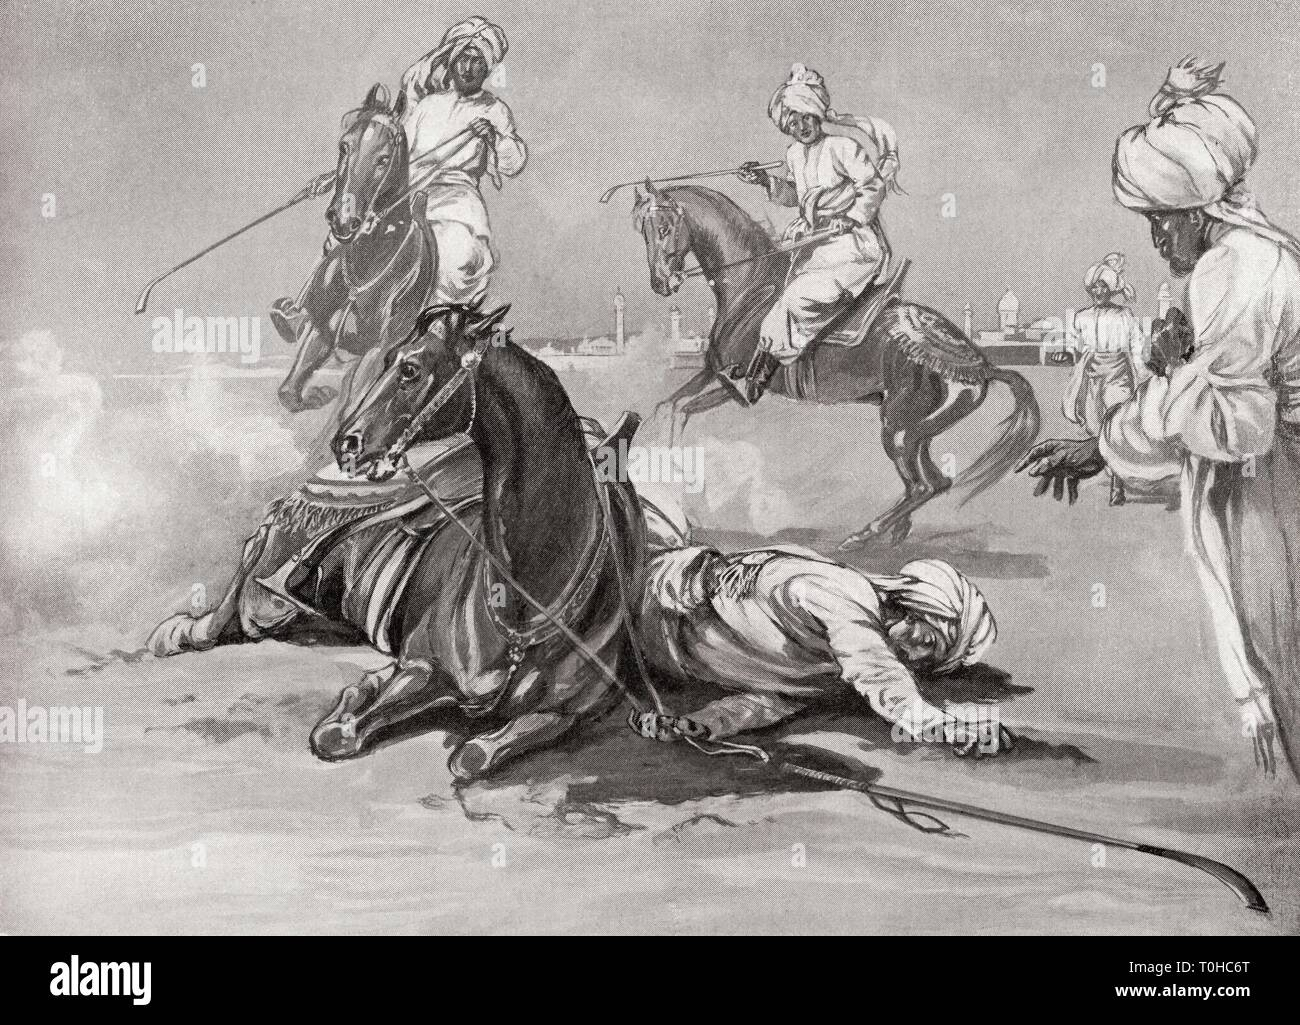 death of Qutb al Din Aibak result of fall from horse while playing Chaugan - Stock Image